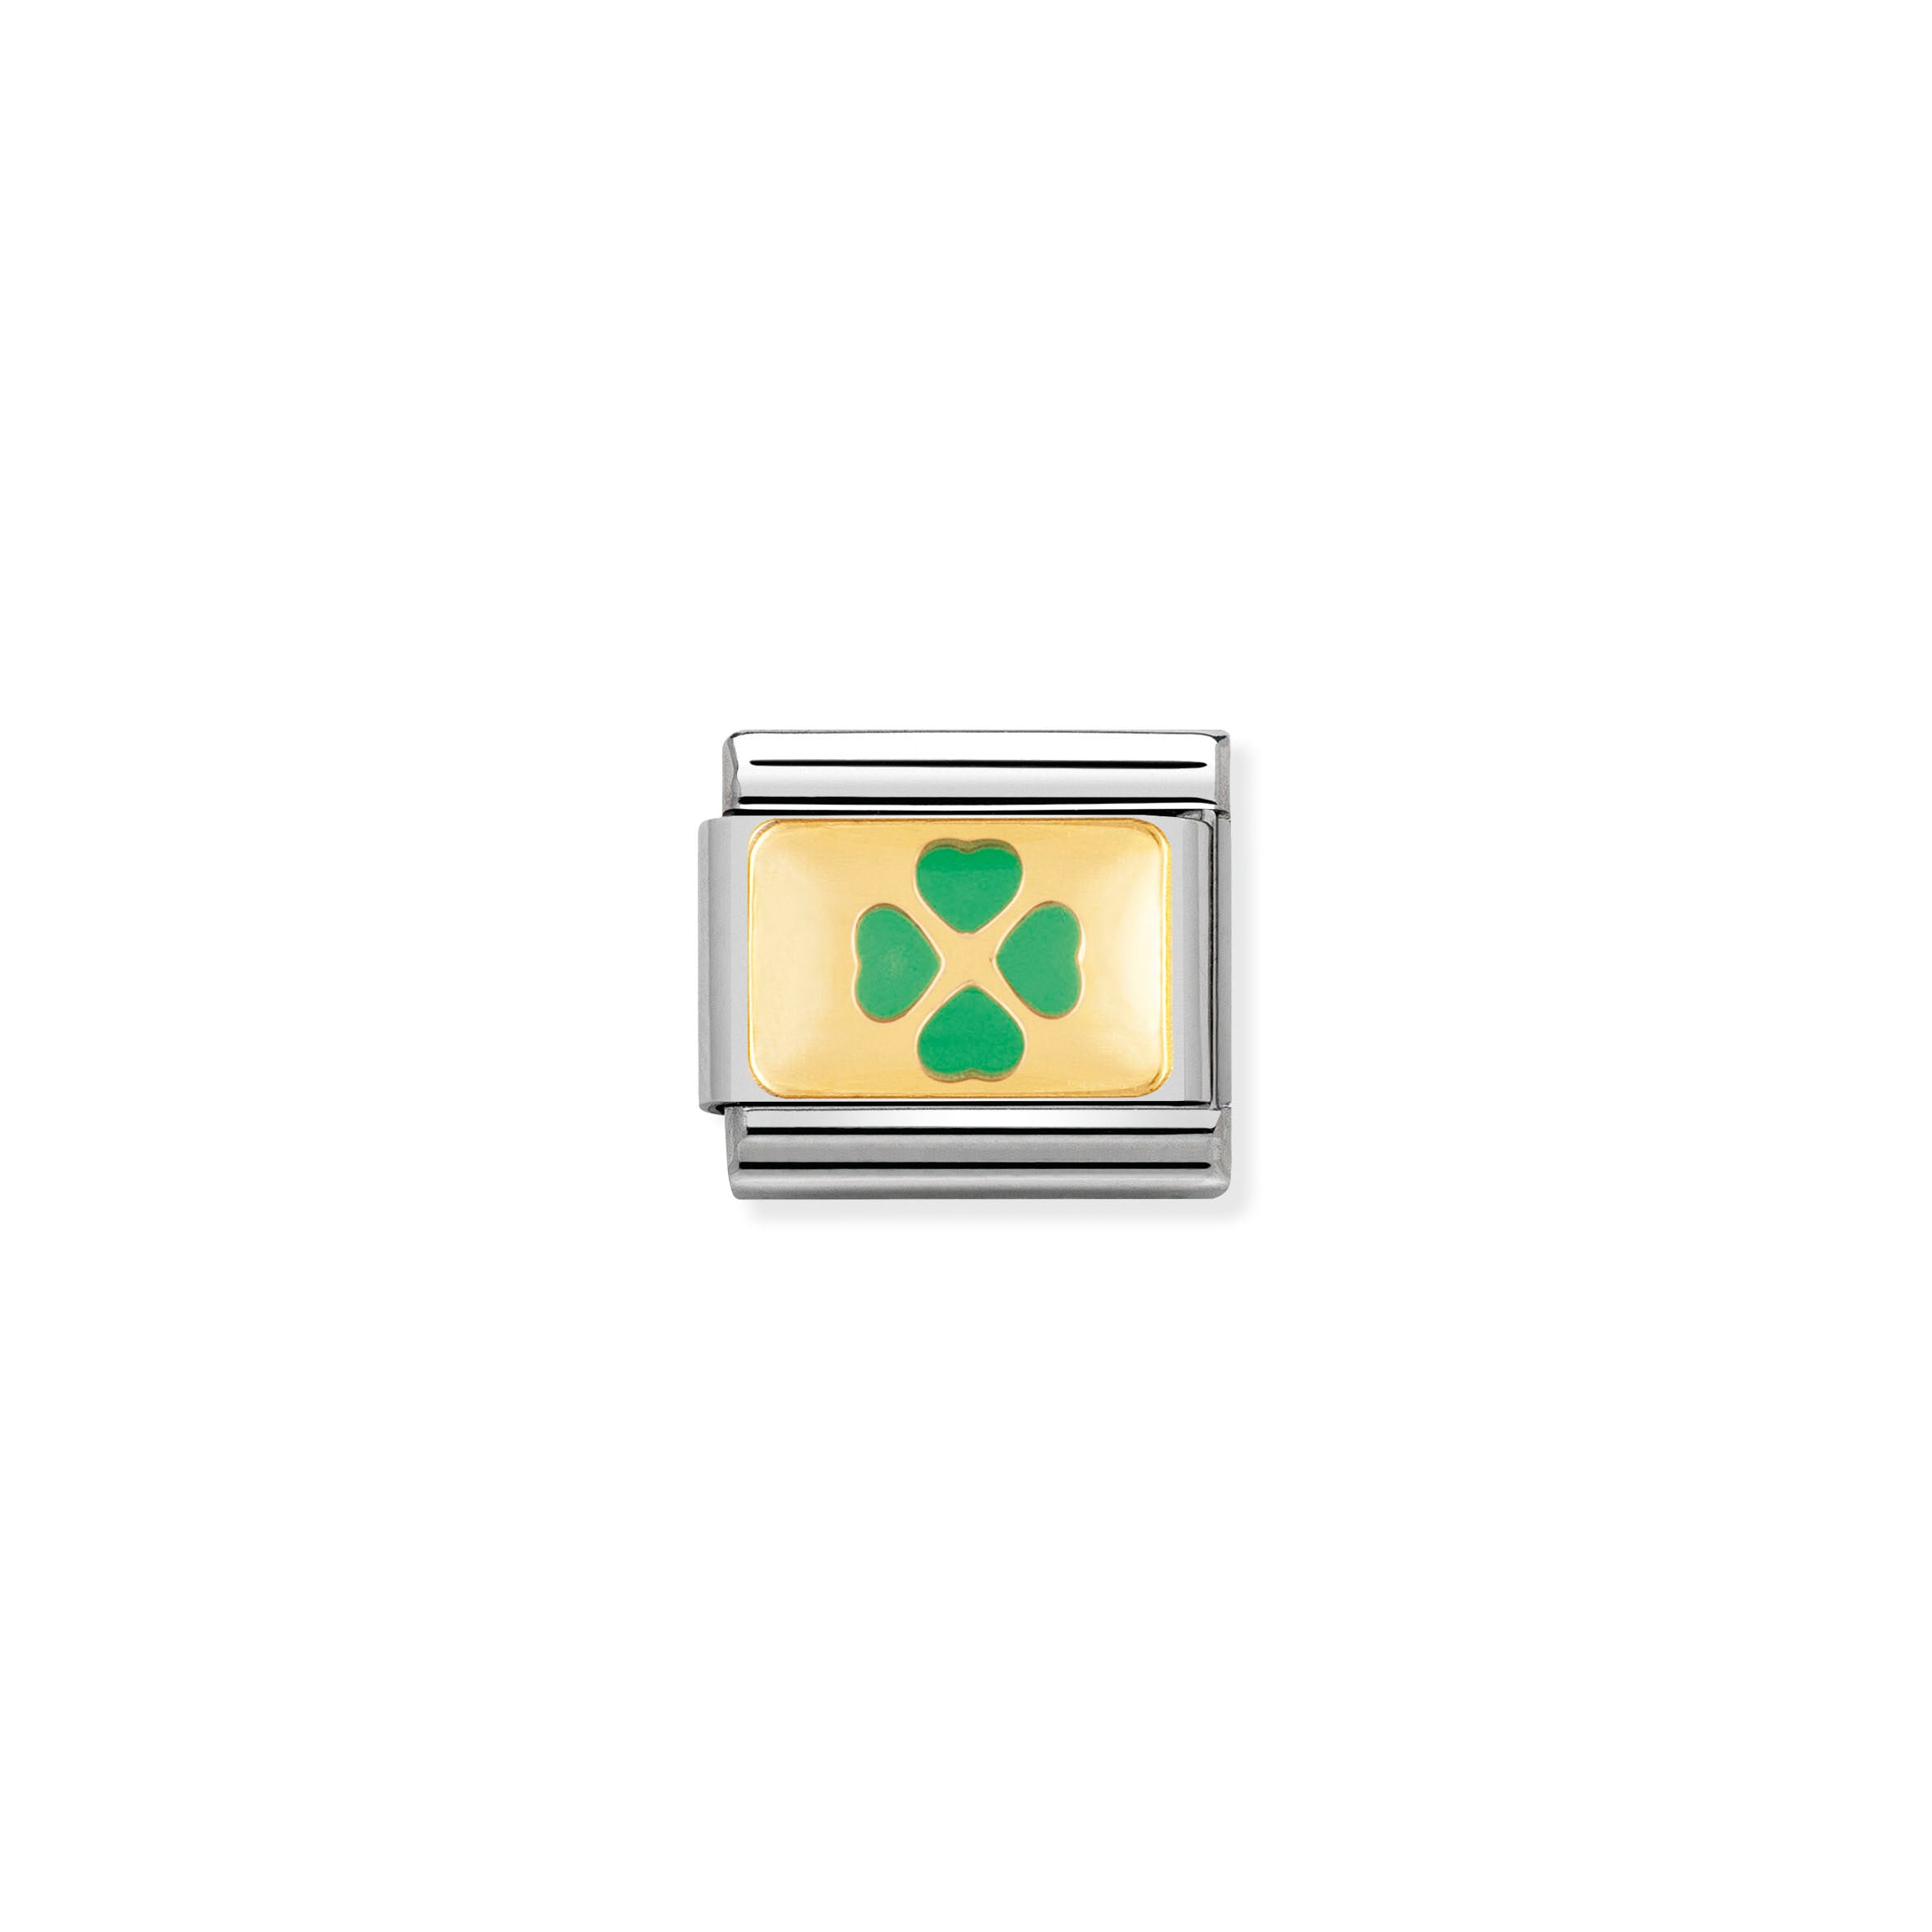 NOMINATION - Composable Steel, Enamel & Gold 'Pale Green Clover' 03020505